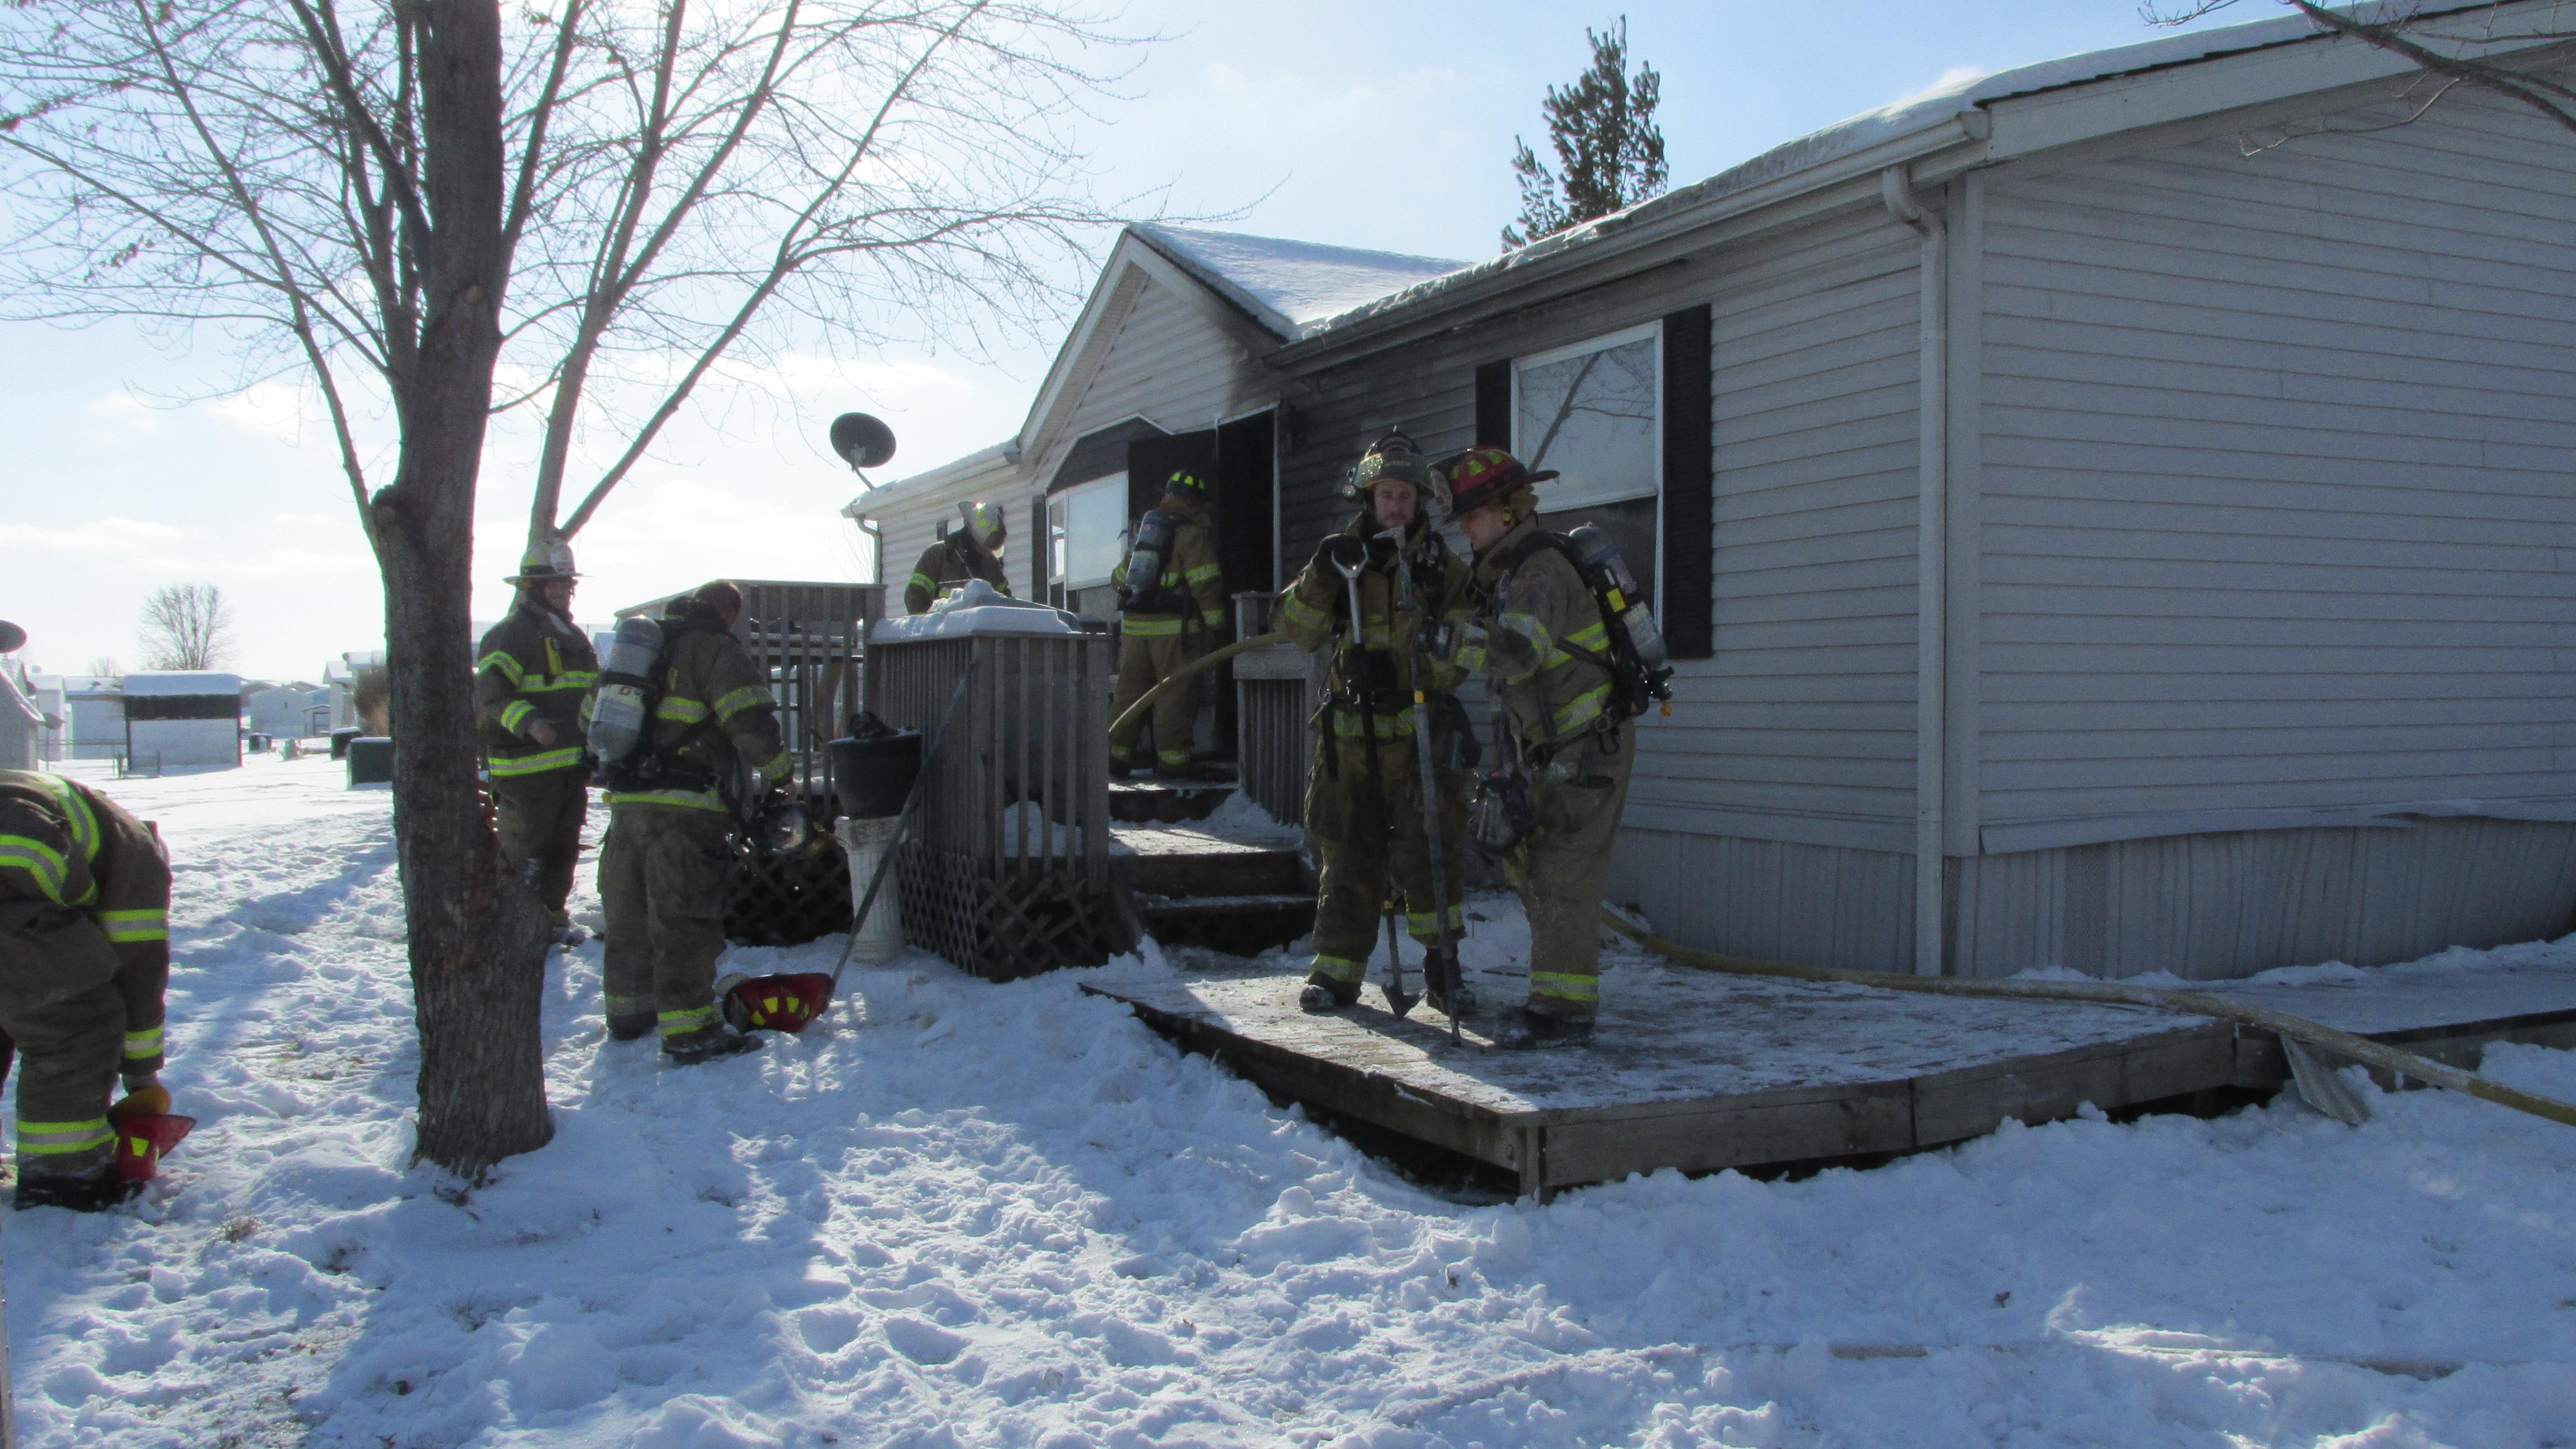 North Liberty fire crews were dispatched to 149 Golfview Ct in North Liberty for a report of a manufactured home on fire. (photo courtesy North Liberty Fire Department)<p></p>